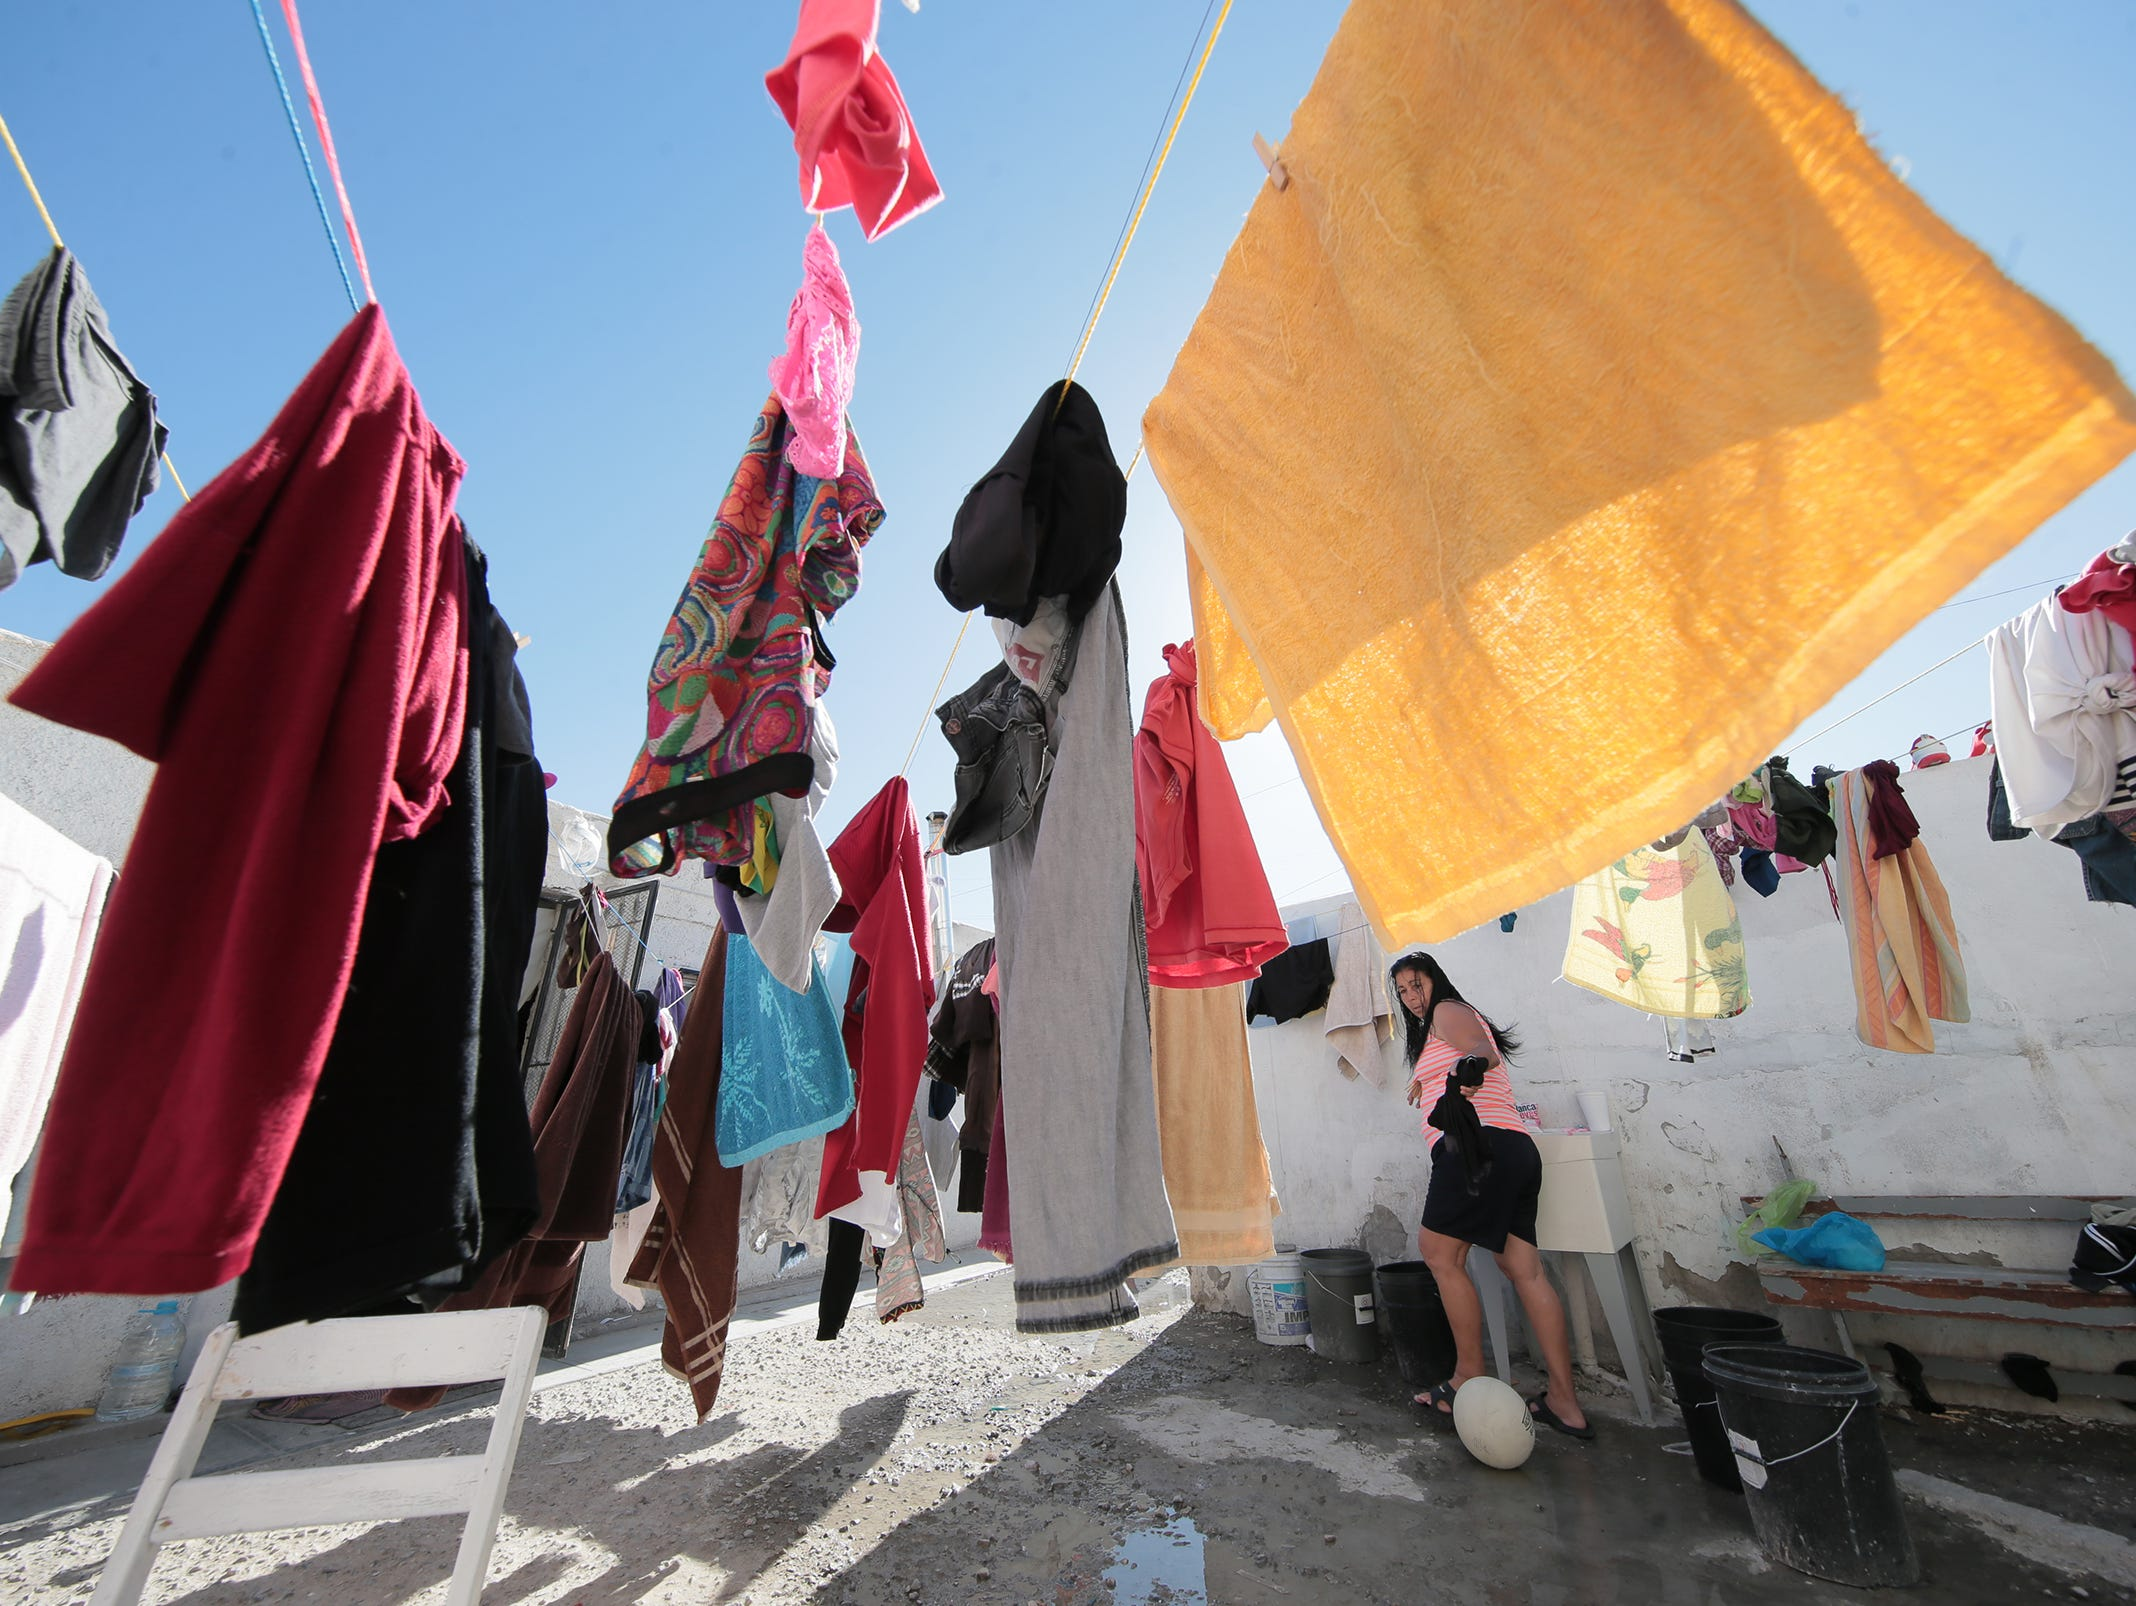 """A Central American asylum seeker washes her family's laundry in a sink at the Albergue Para Migrantes """"El Buen Pastor"""" in Juarez. Asylum seekers are seeing long waits for their number to be called by U.S. authorities."""